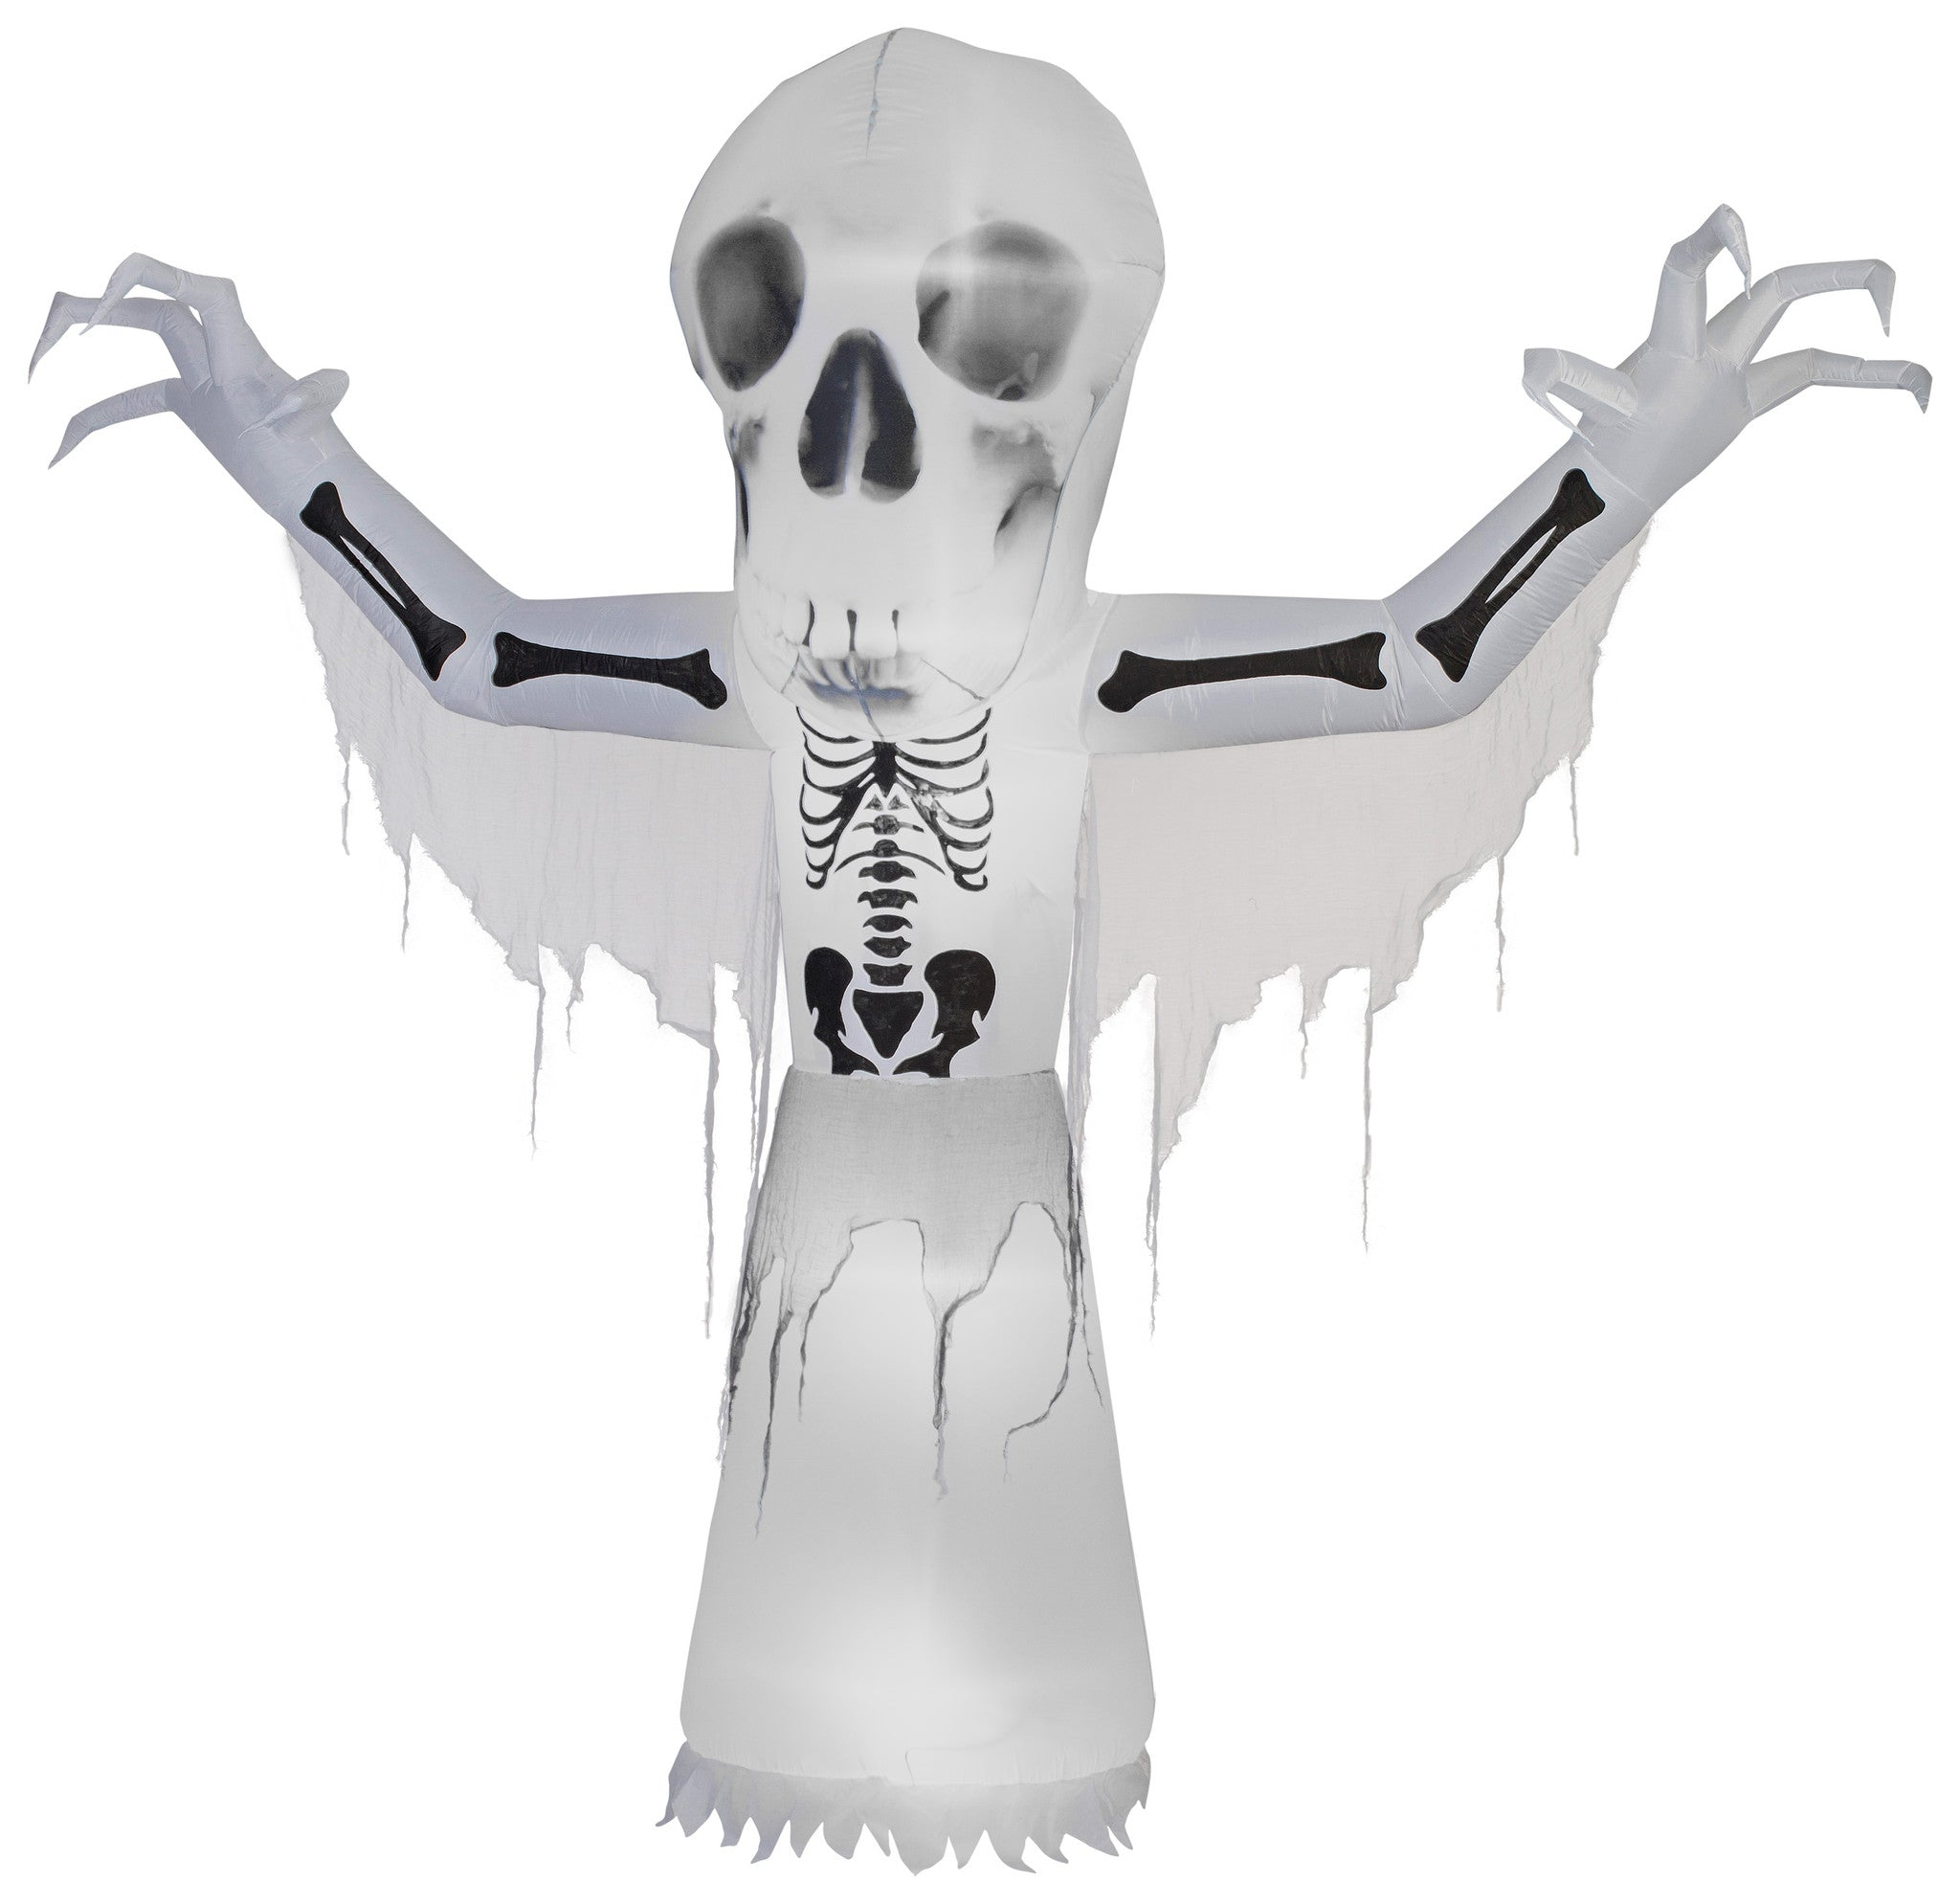 10' Airblown Short Circuit Thunder Bare Bones Halloween Inflatable